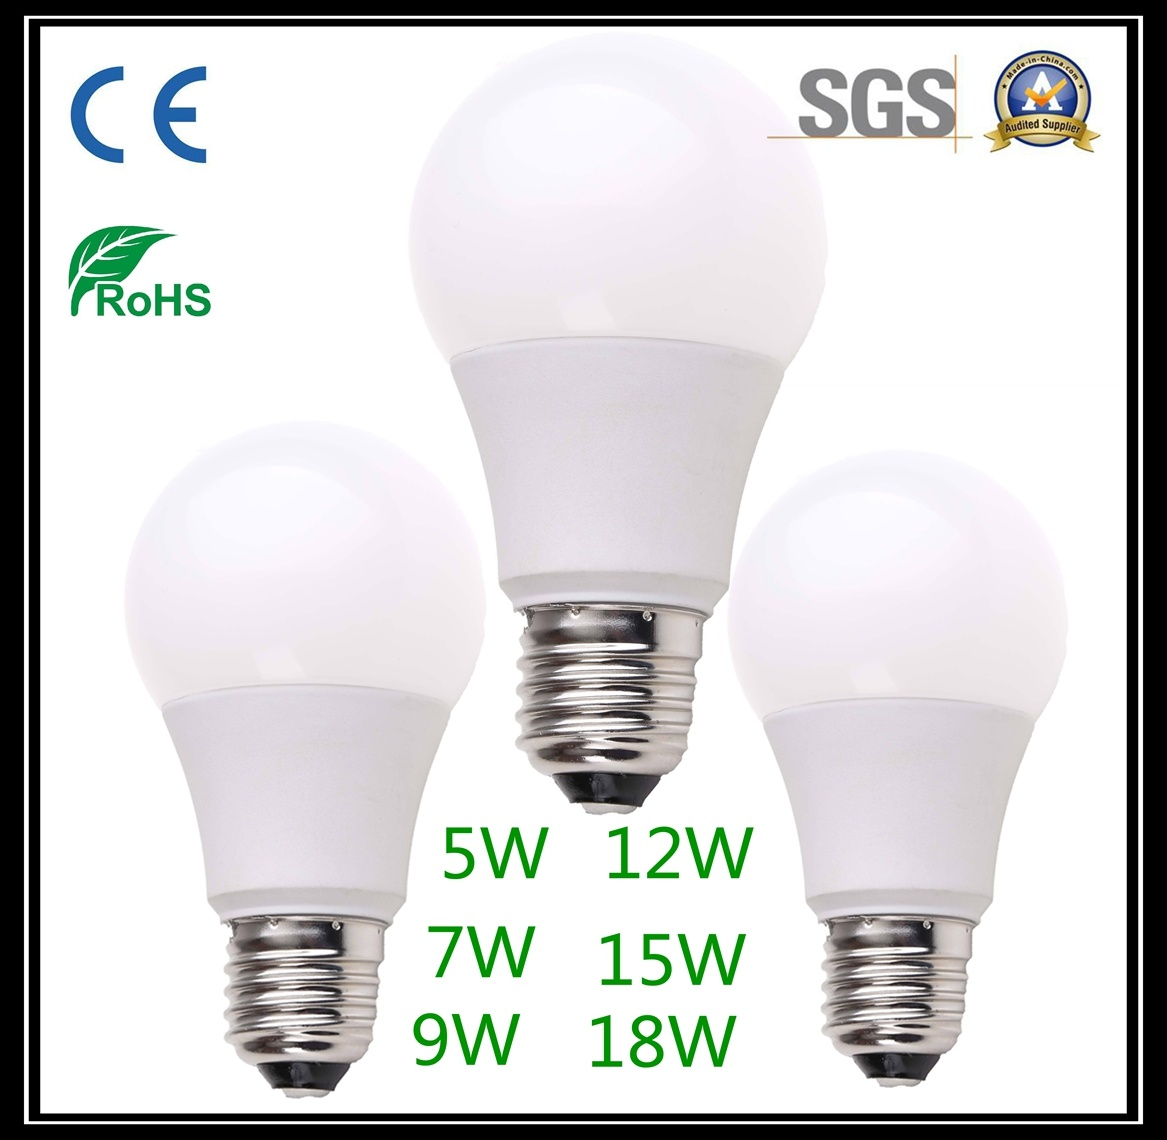 China SGS Approved Factory Direct LED Lamp for Home Use - China LED ...